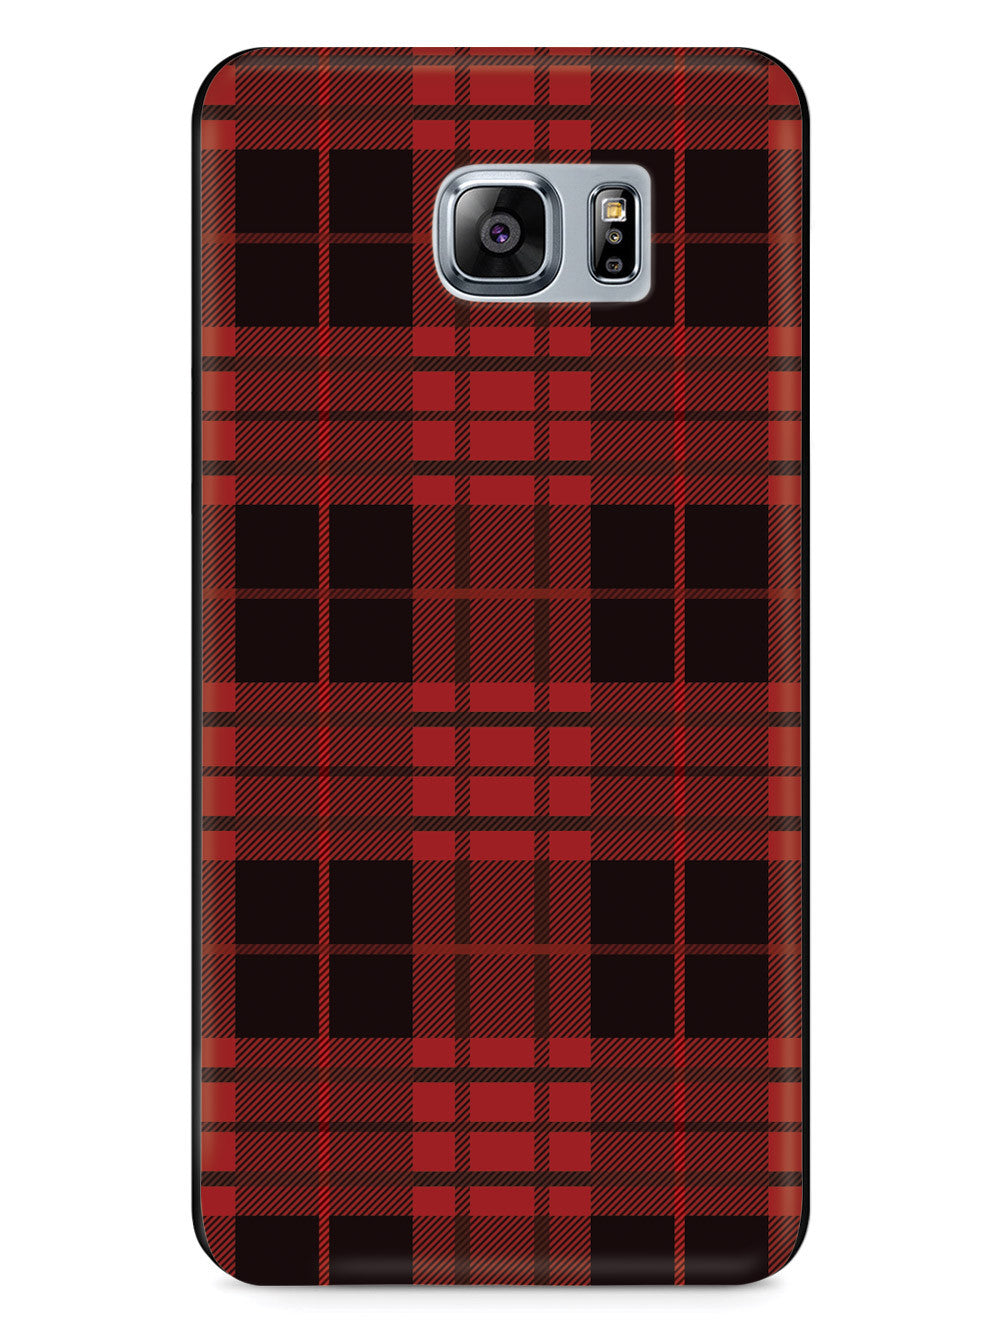 Red and Black Plaid - Black Case